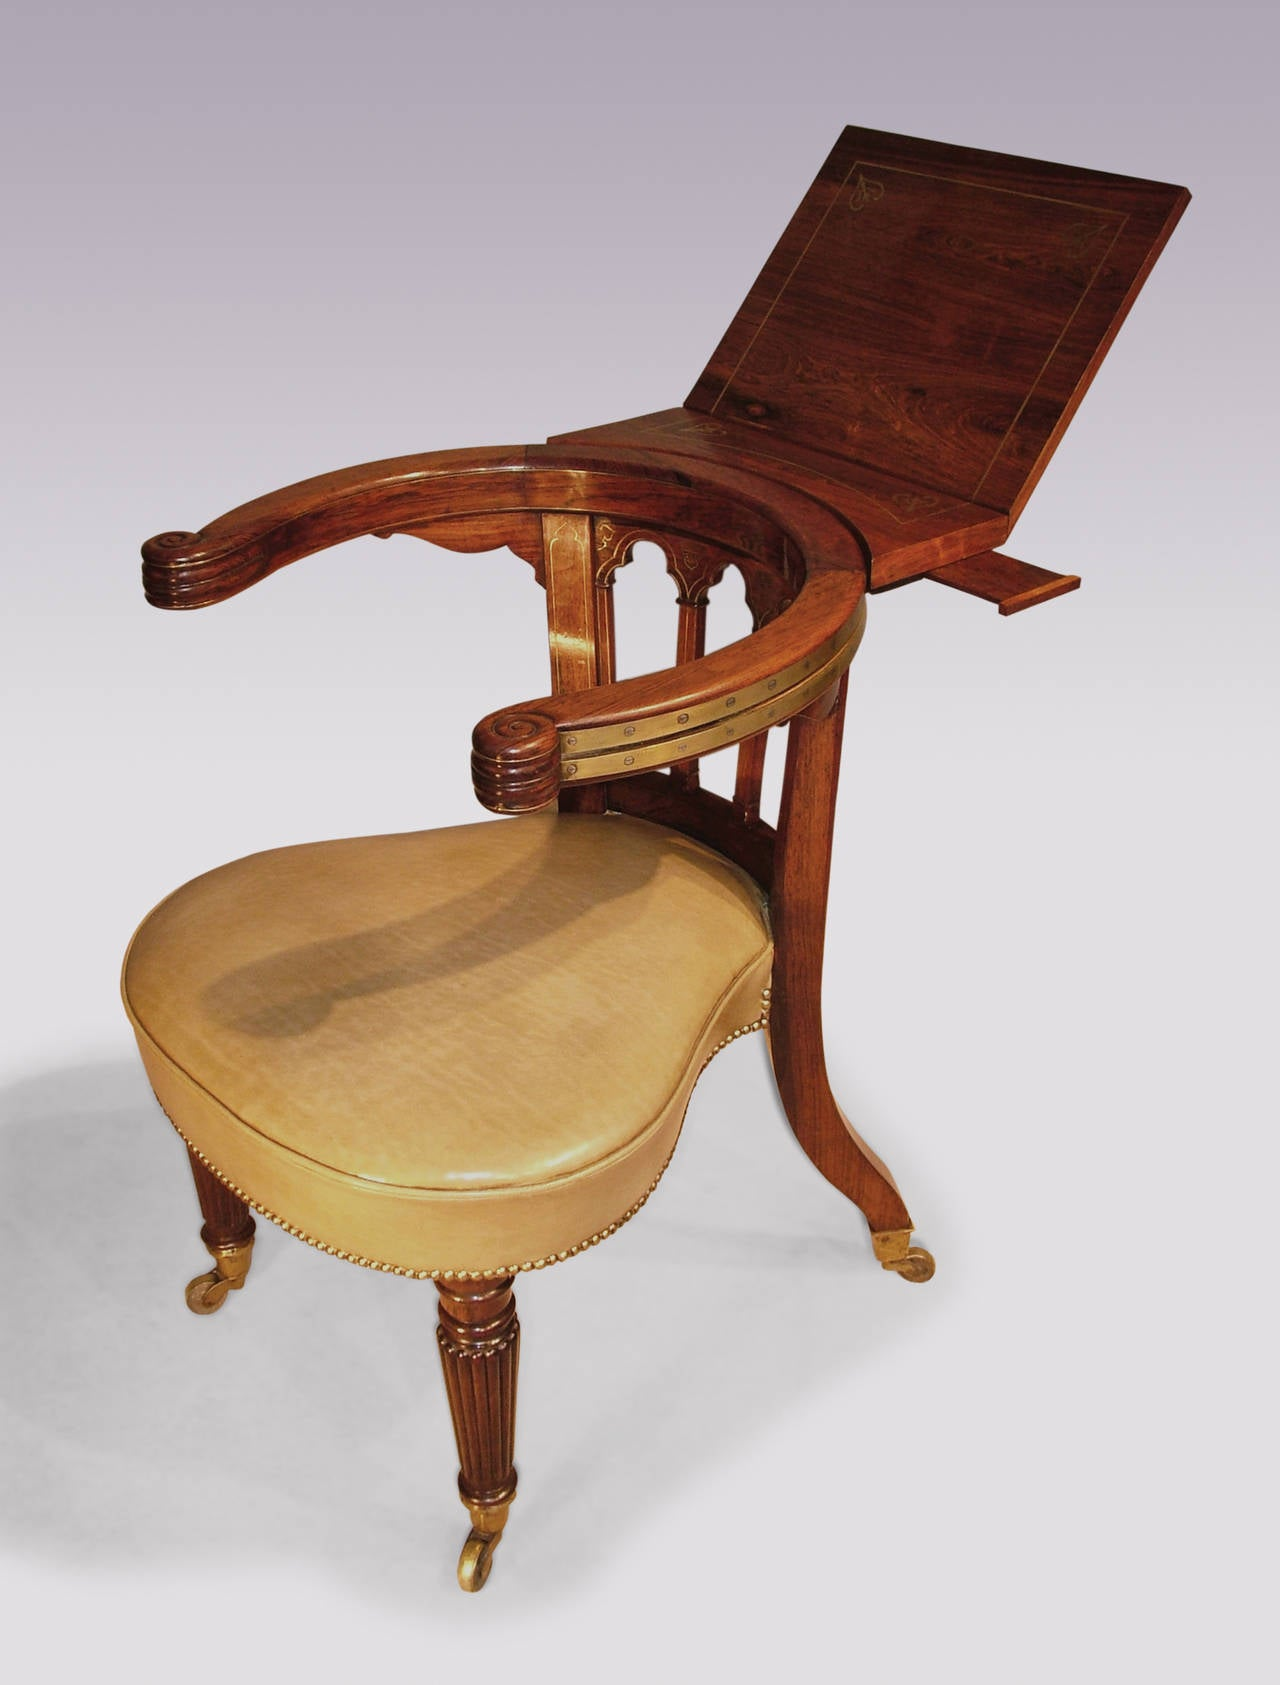 Early 19th Century Regency Period Gillows Rosewood